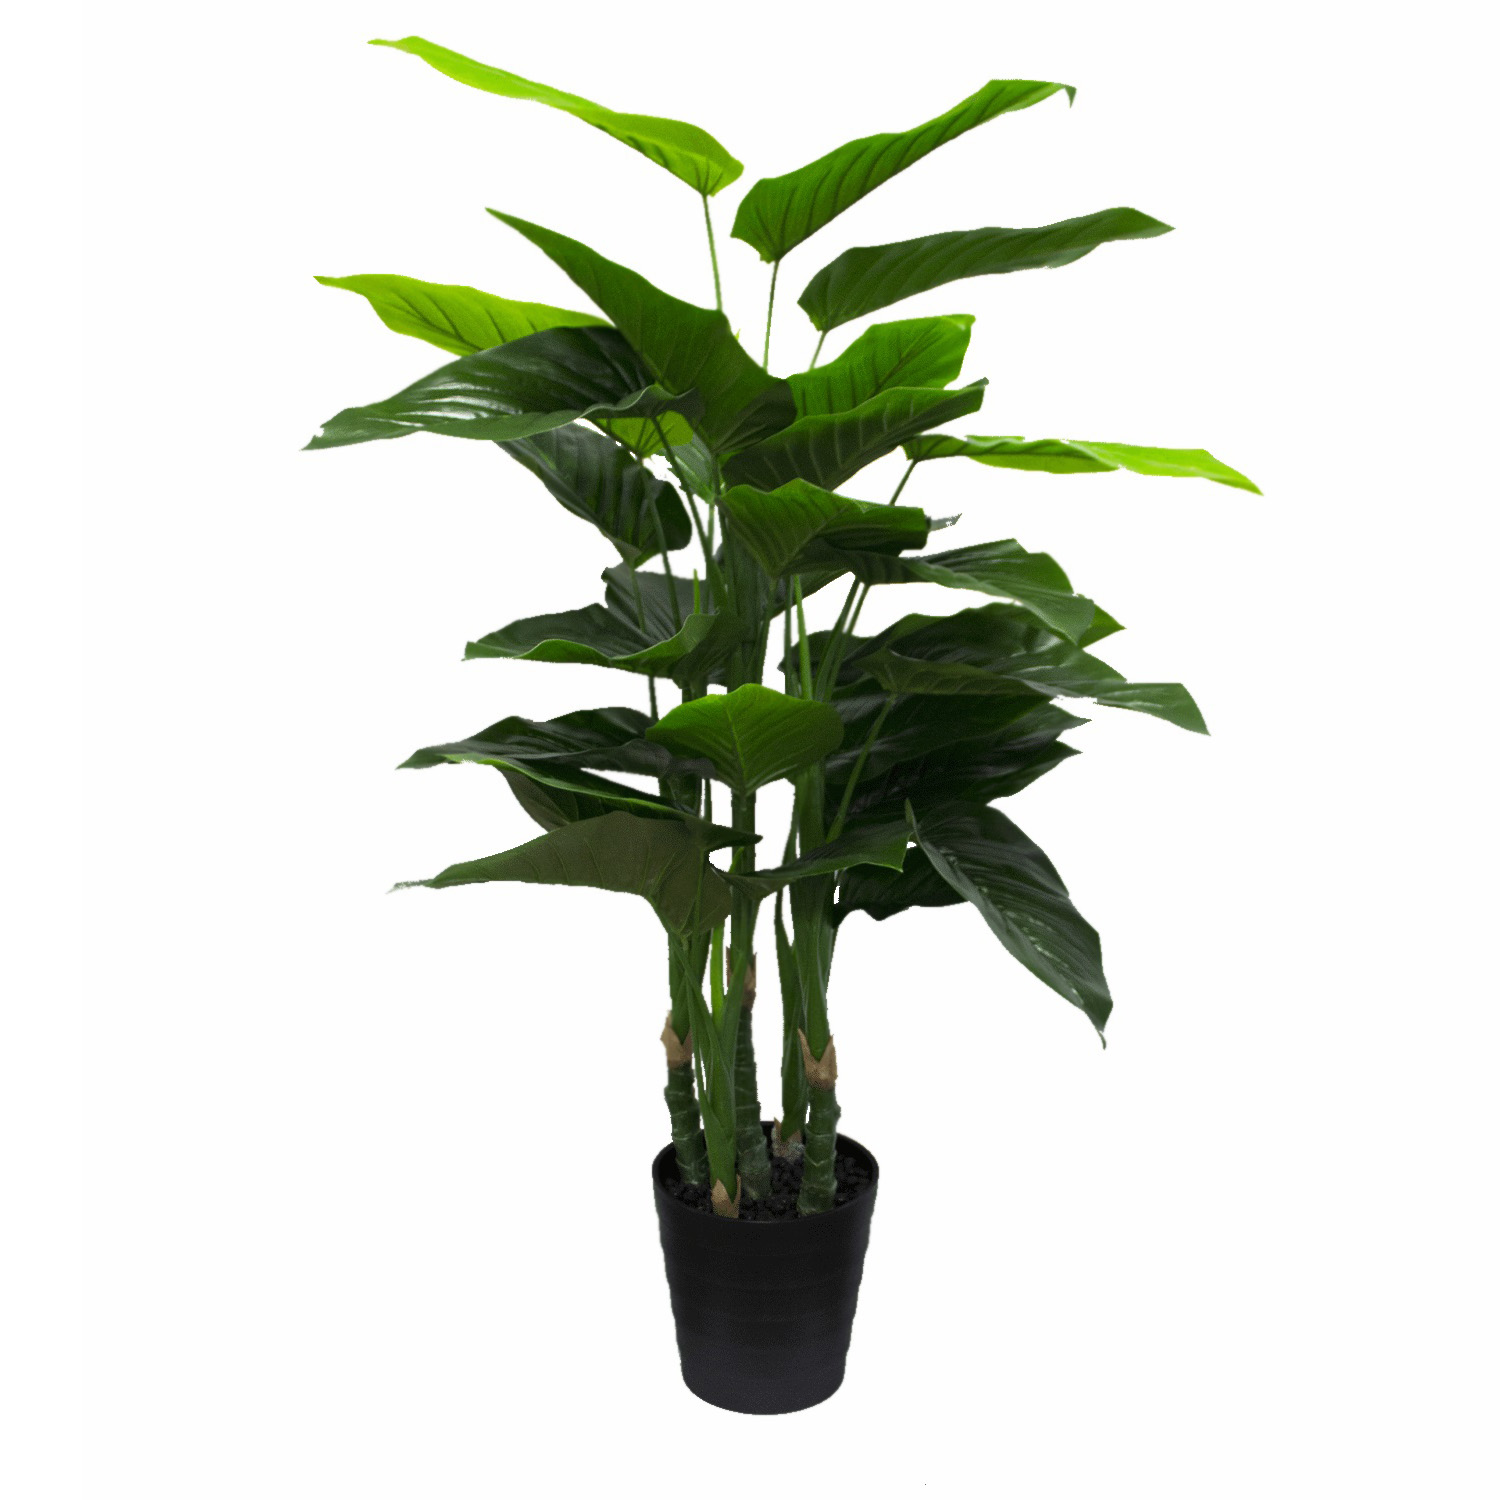 Artificial Philodendron Plant. Add some life and greenery to your event space with this large-sized artificial leafy potted plant.